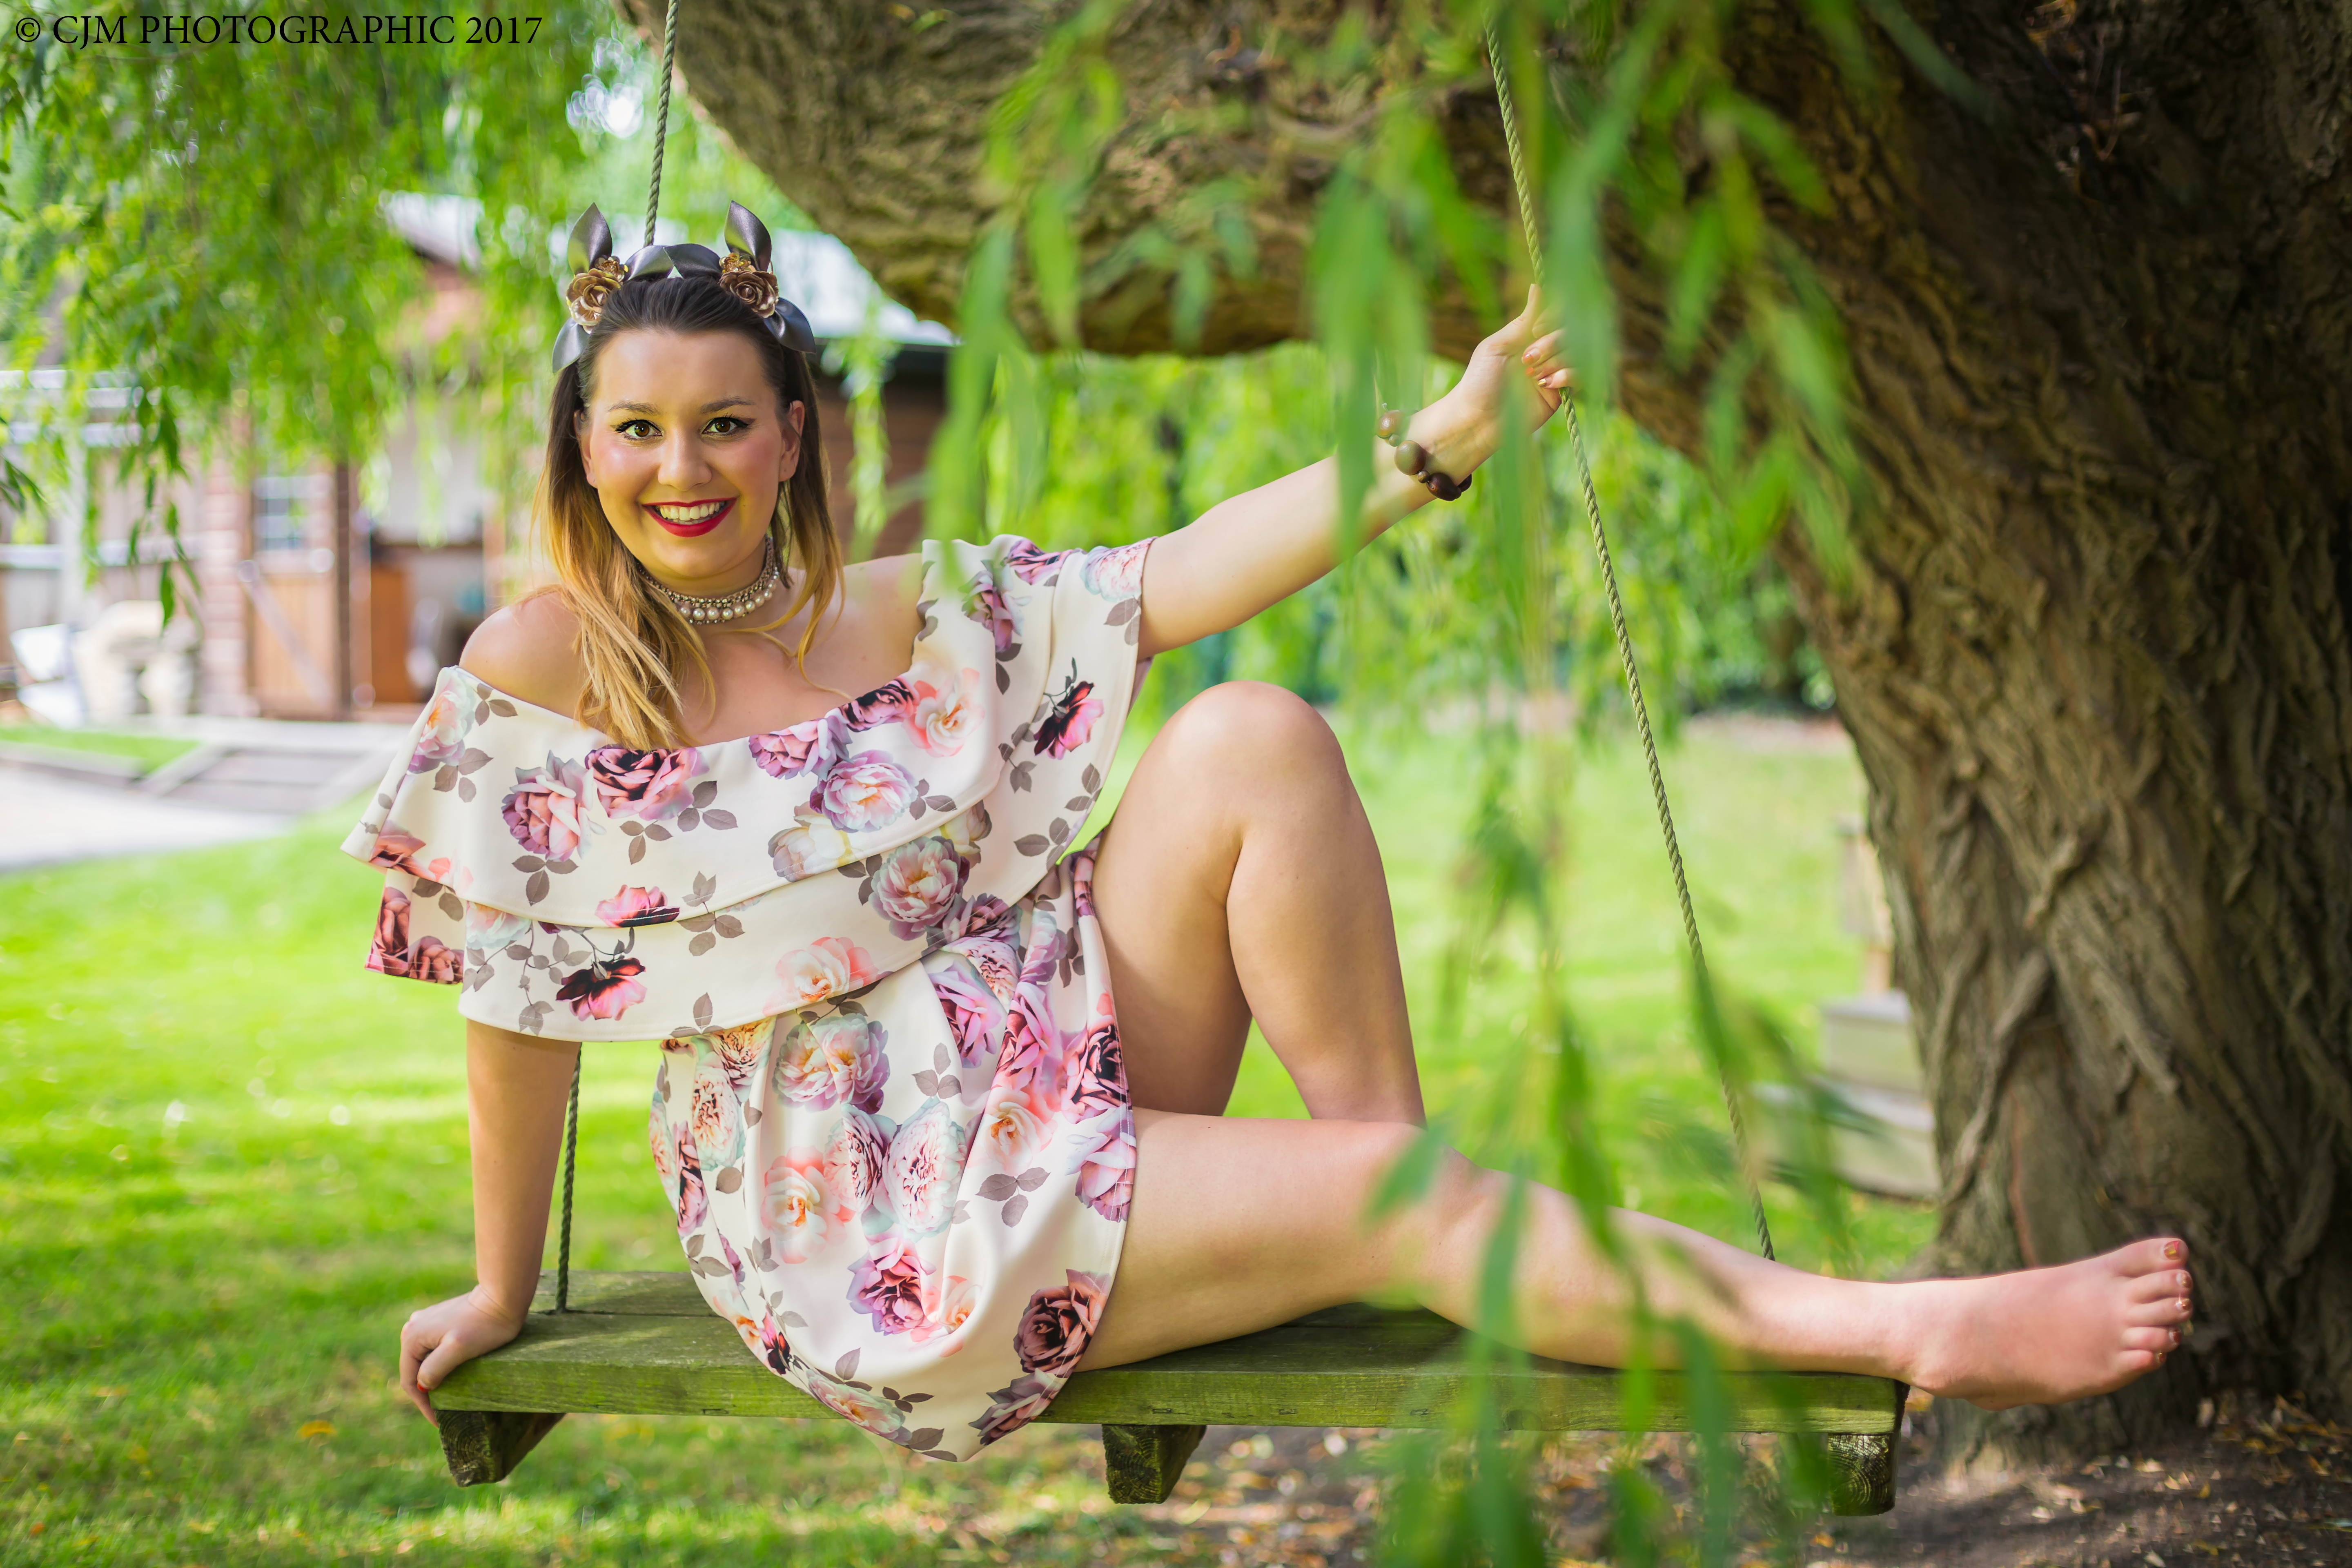 Chelsey Swing   CJM Photographic